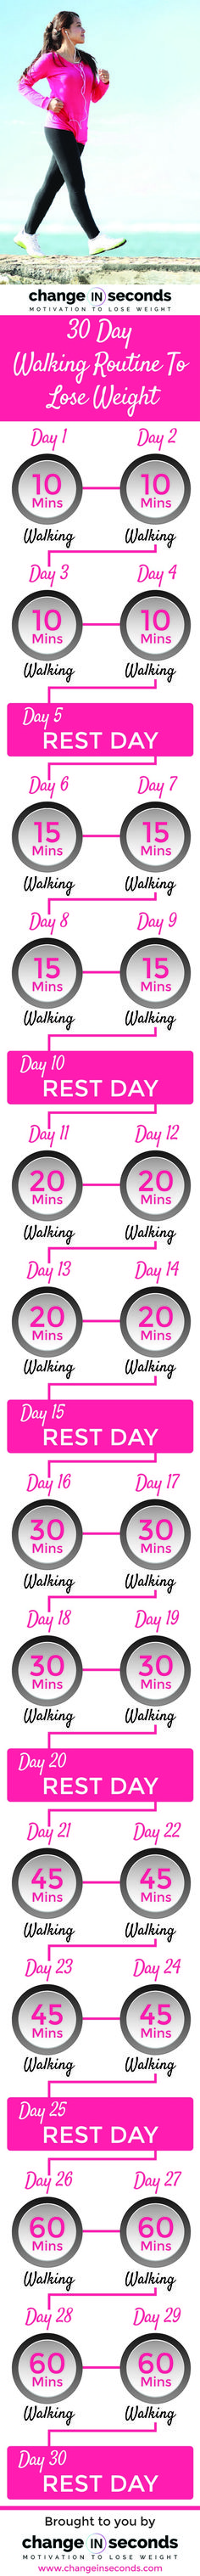 30 Day Walking Routine To Lose Weight Download FREE PDF